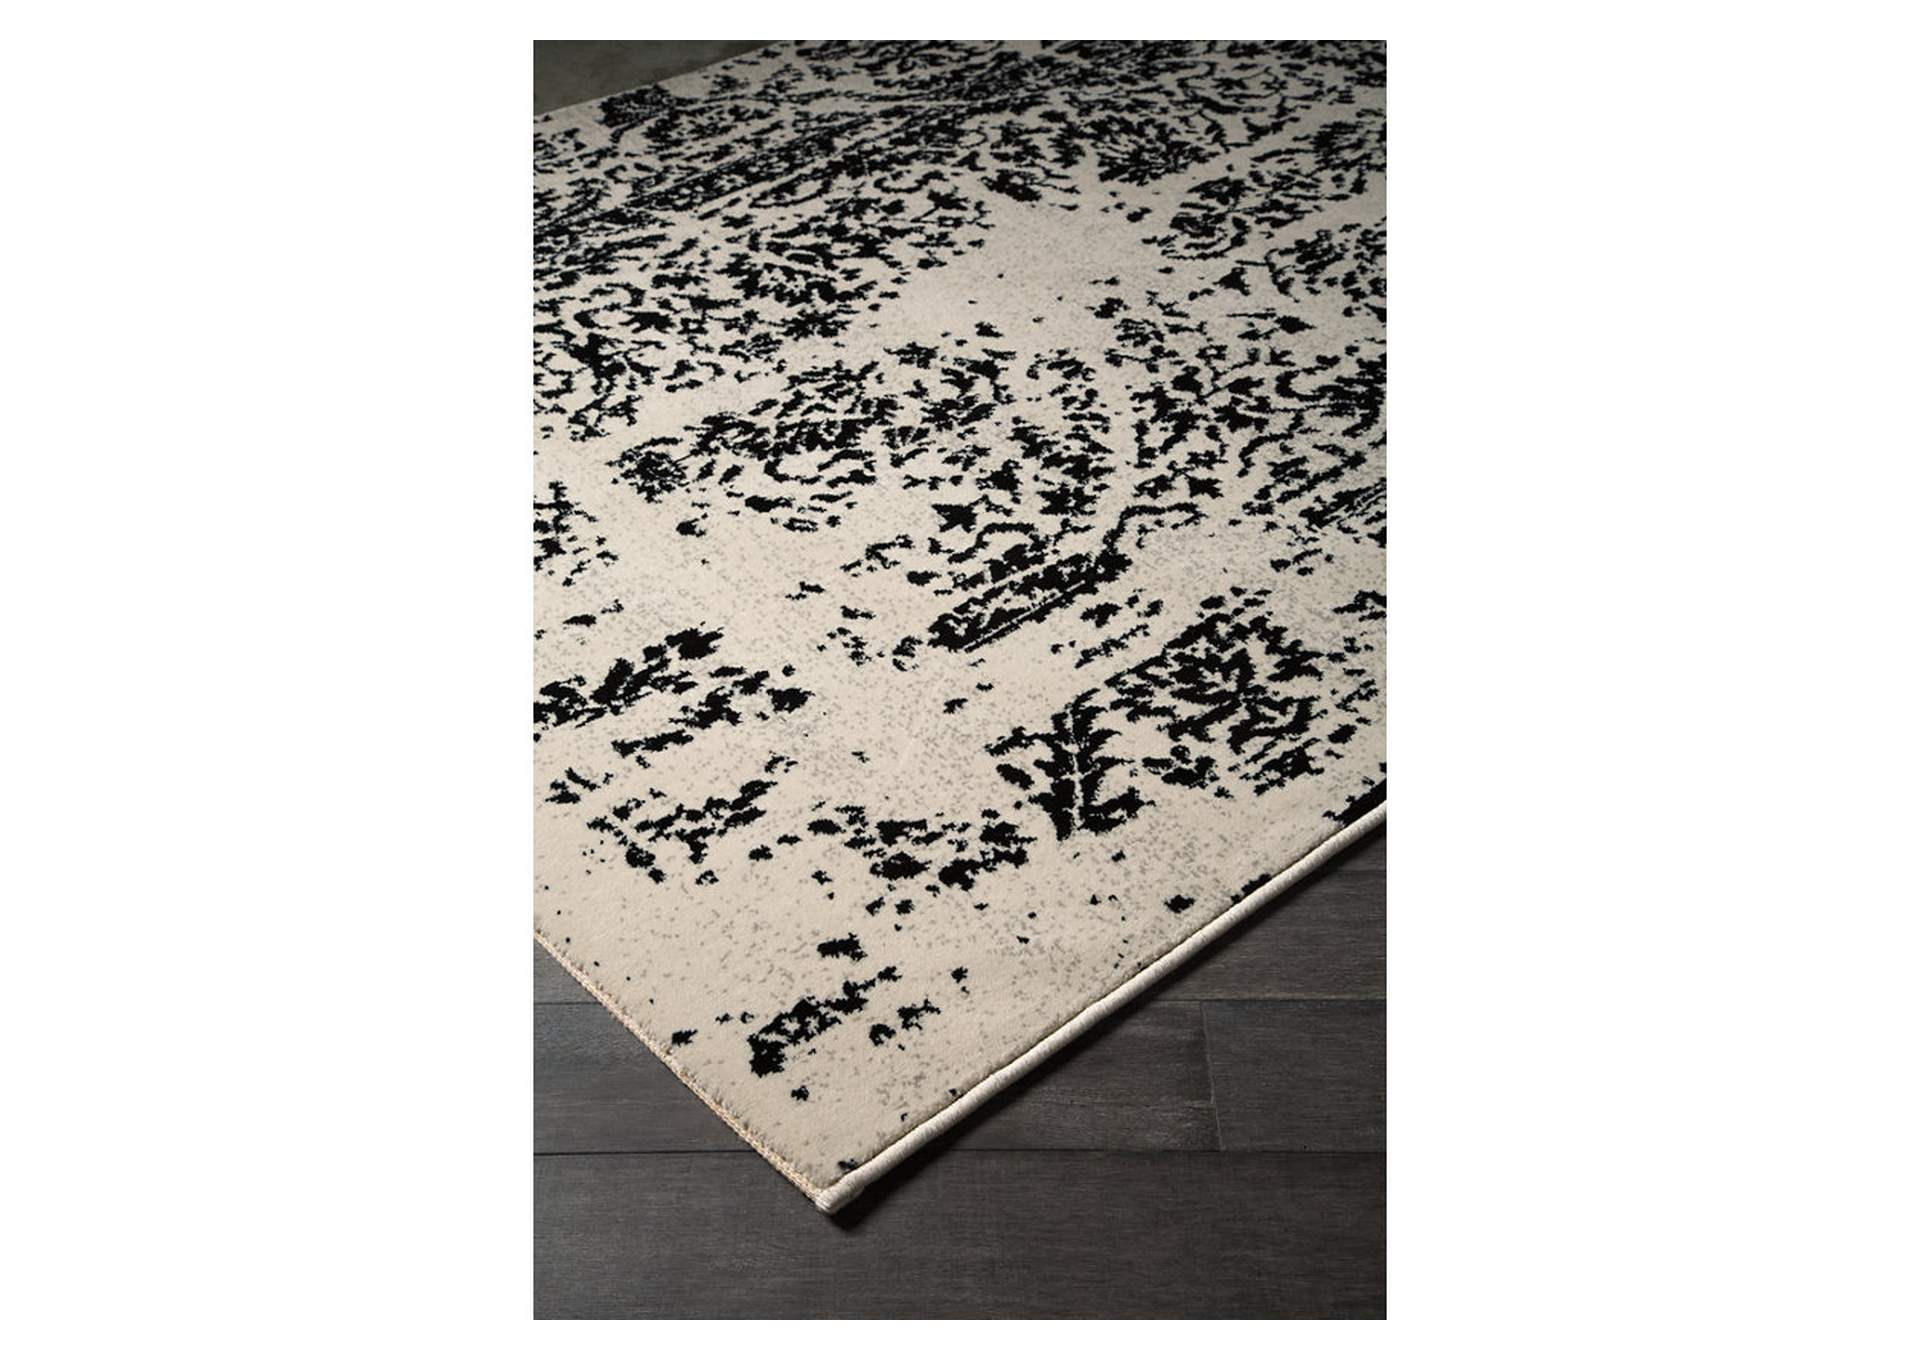 Jag Black/White Large Rug,Signature Design By Ashley